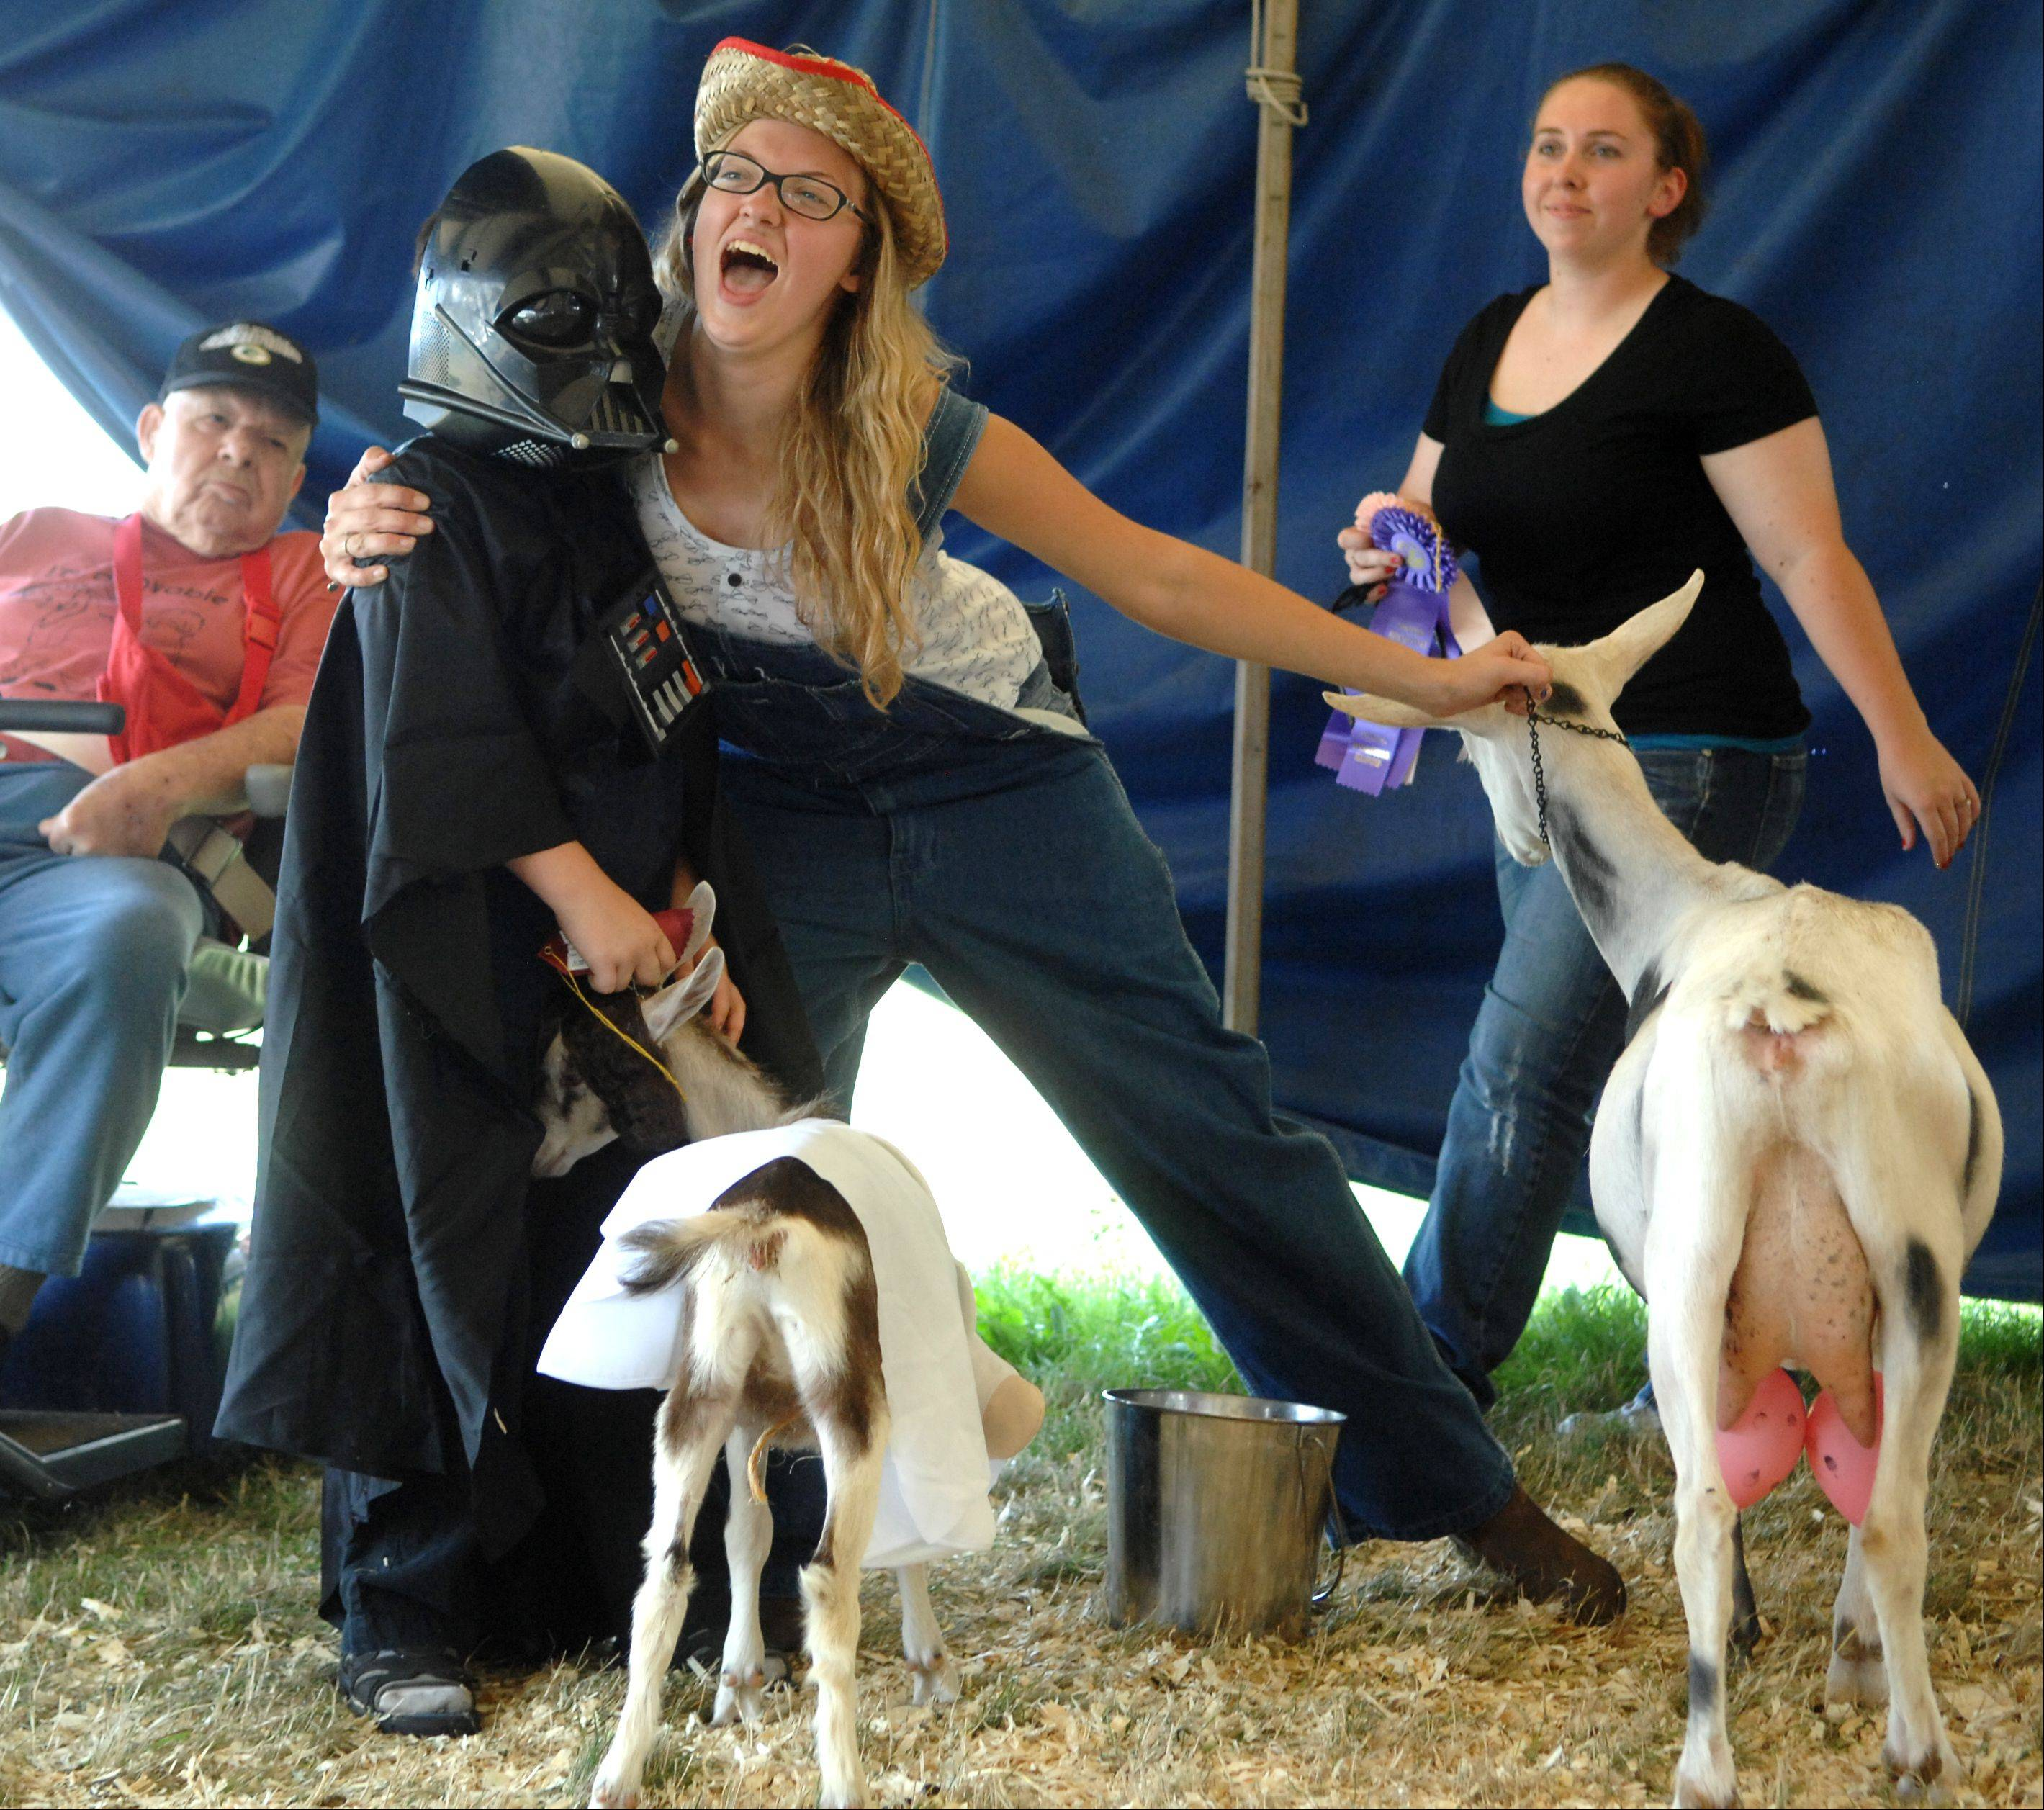 Braydin Winn, dressed as Darth Vader, 7, of Harvard gets a hug from Jordann Bauer, 19, of Lake Geneva as they hear the results of the goat costume contest during day two of the McHenry County Fair in Woodstock Thursday. Bauer won best in show with her dairy farmer costume. She painted spots on her goat and made a couple of extra udders out of balloons.